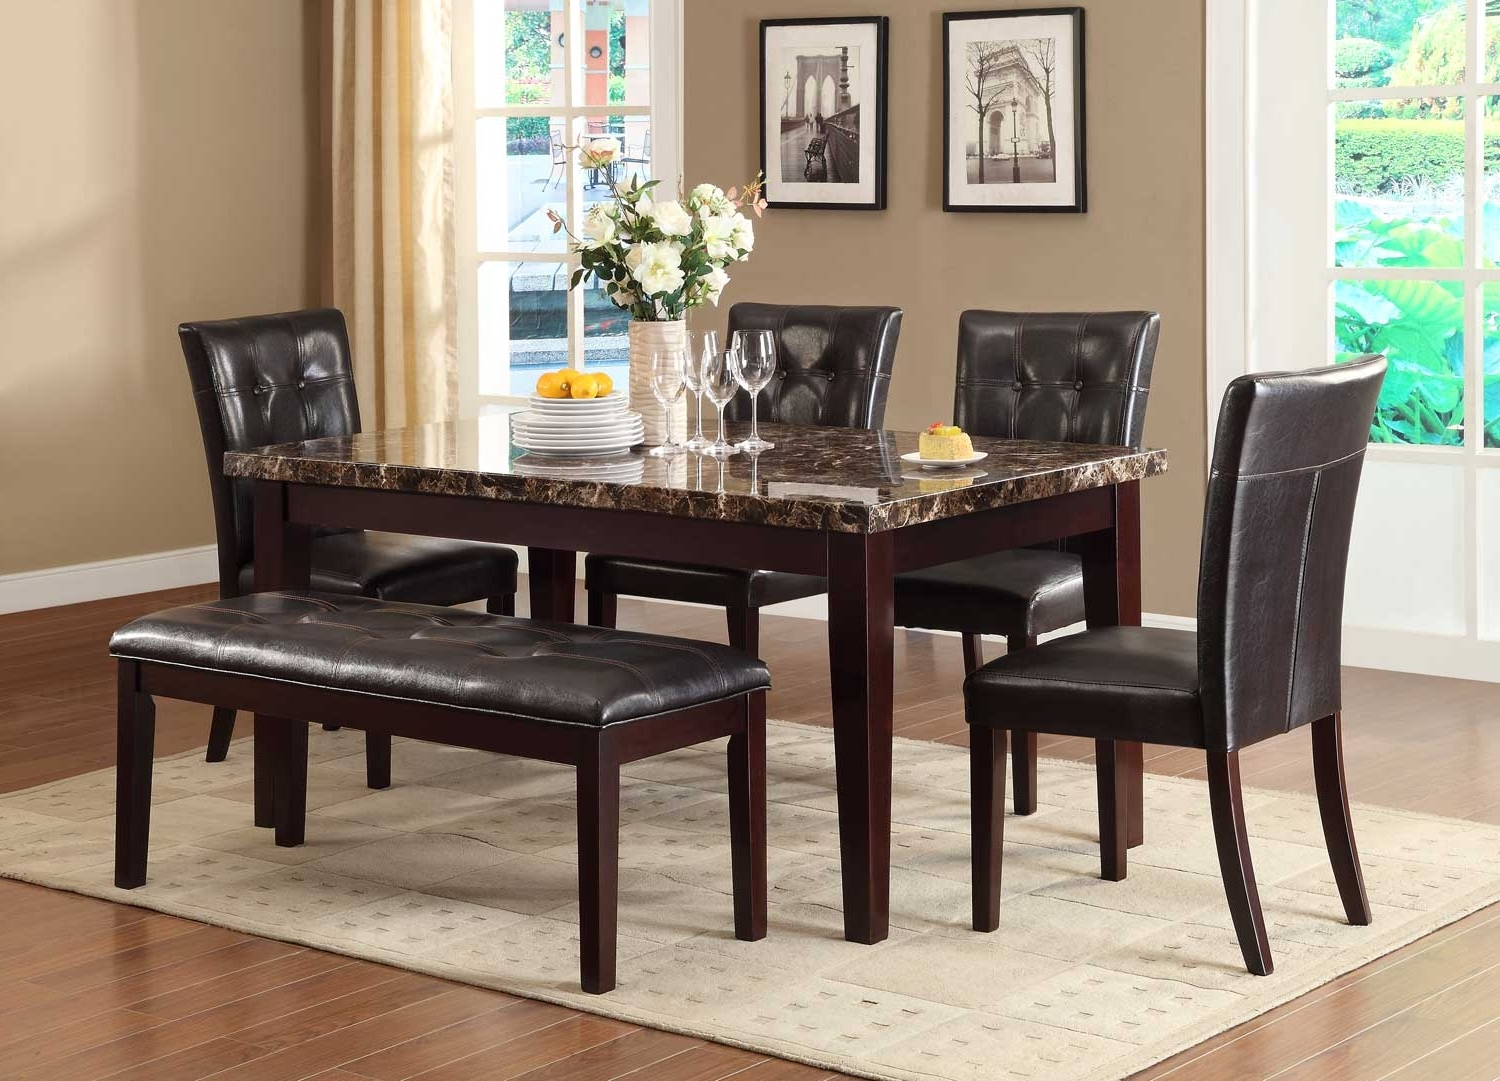 Homelegance Teague Faux Marble Dining Set – Espresso D2544 64 Regarding Trendy Marble Dining Chairs (Gallery 6 of 25)